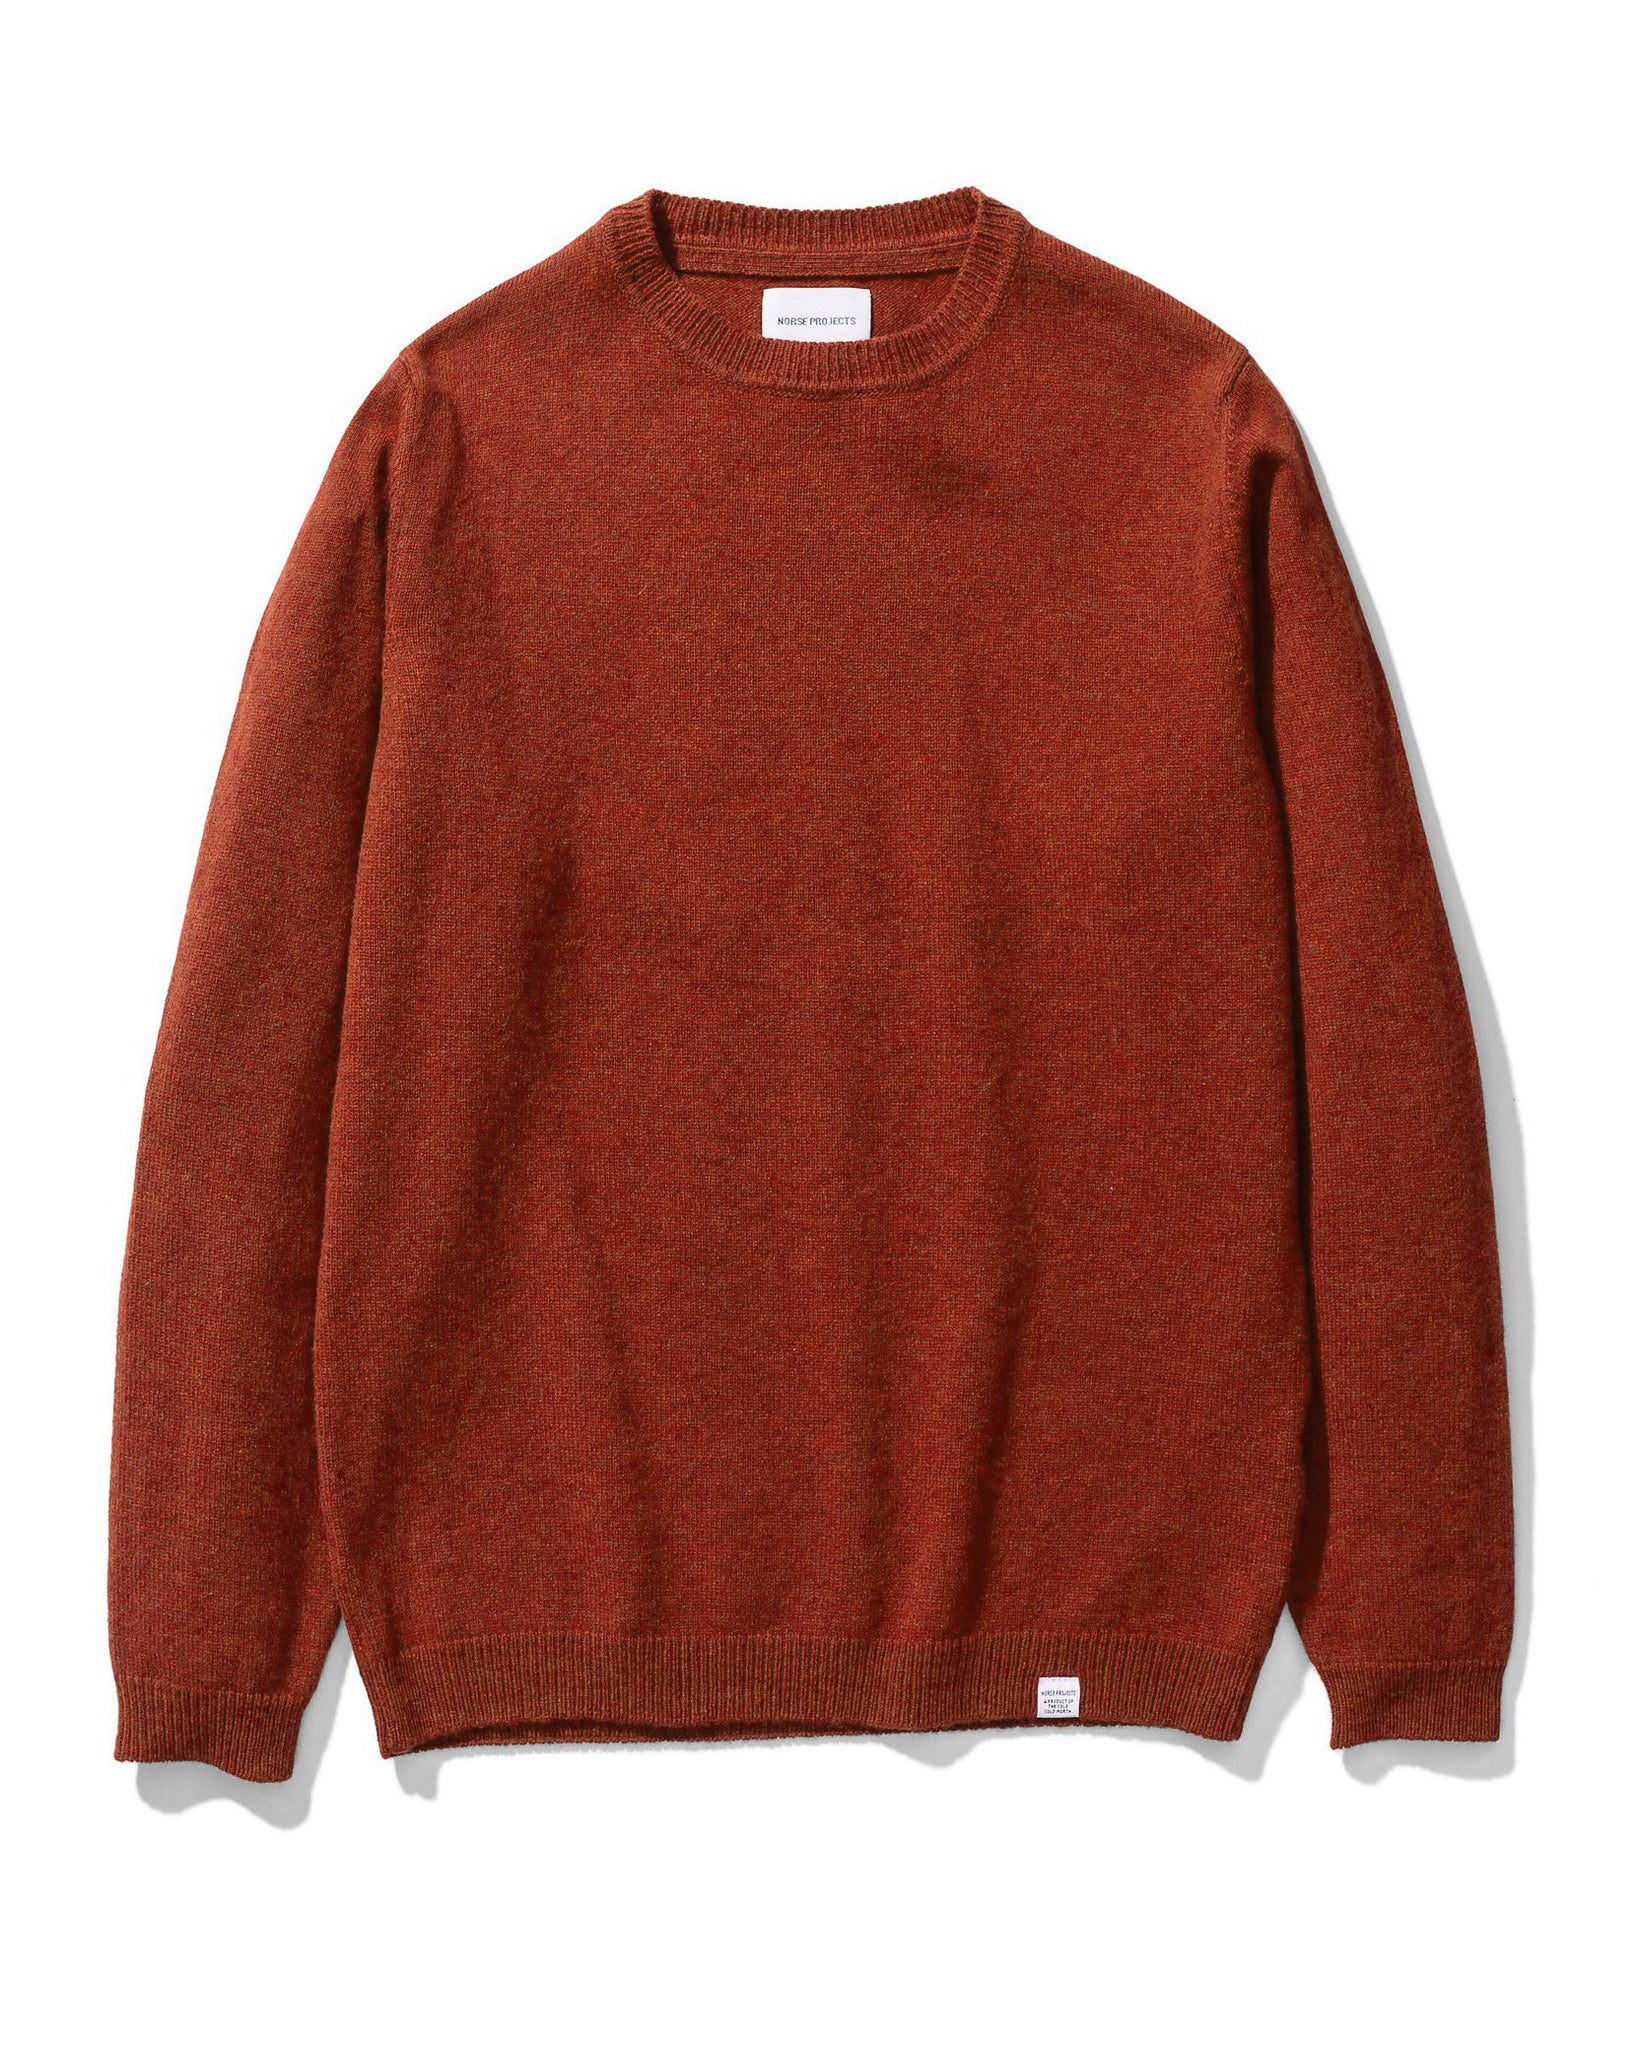 Sigfred Lambswool - Carmine Red